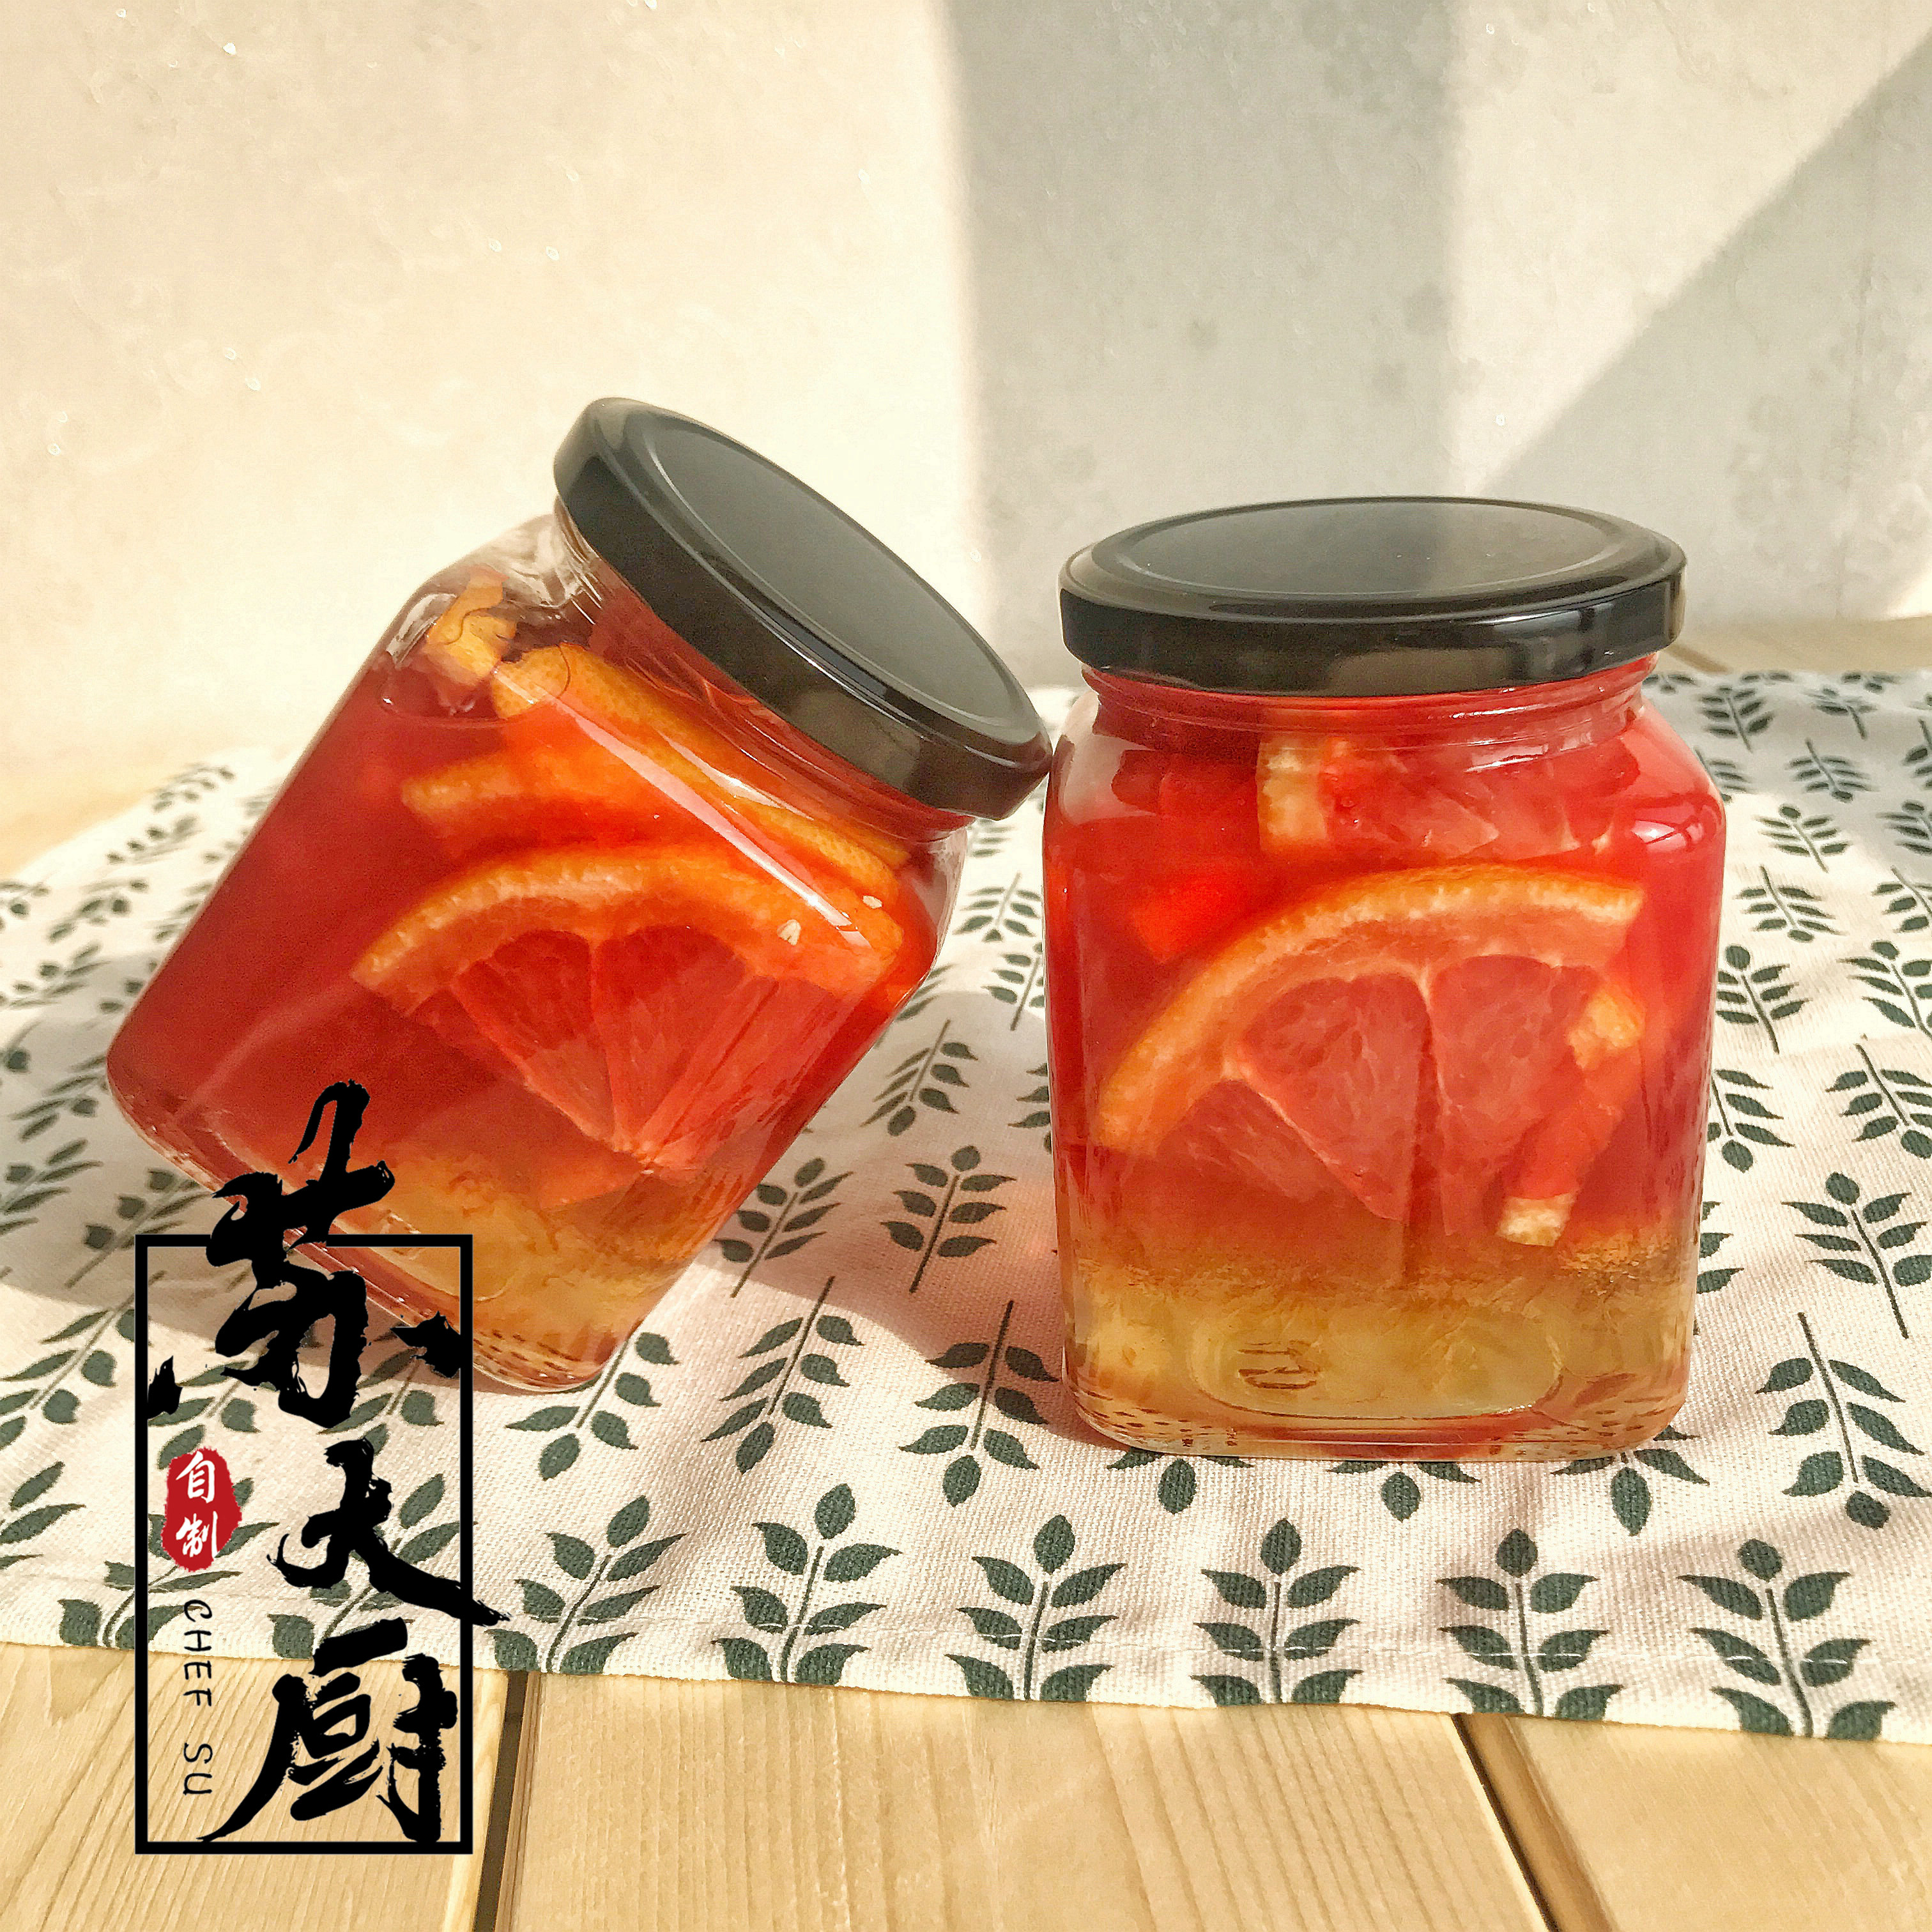 [The goods stop production and no stock][Sou Chef] Honey Grapefruit Tea Grapefruit is full Full cup of red pomelo handmade without added homemade fruit tea